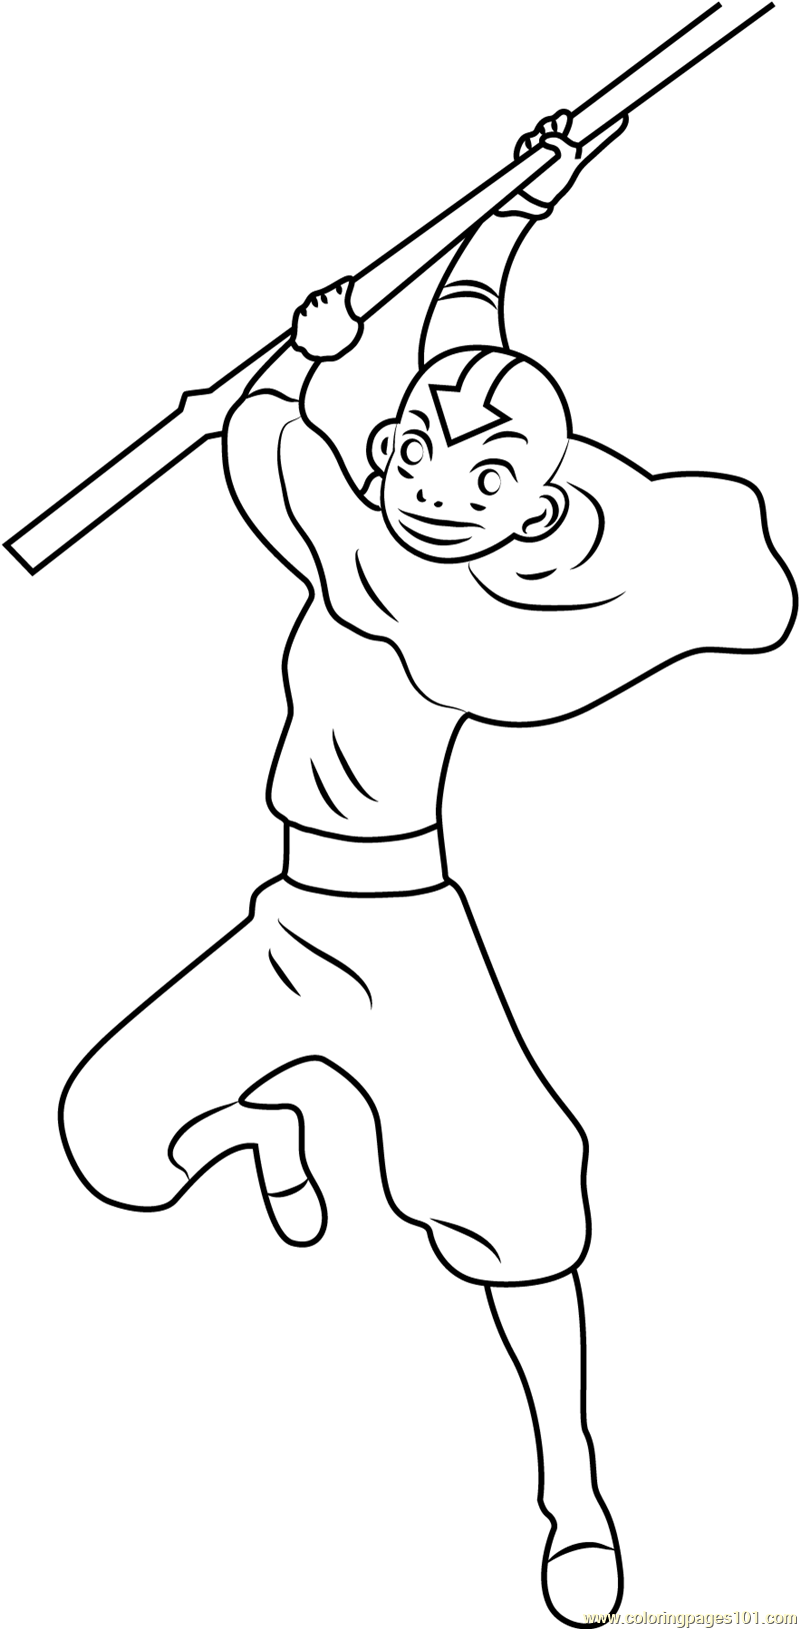 avatar aang coloring pages - photo#44